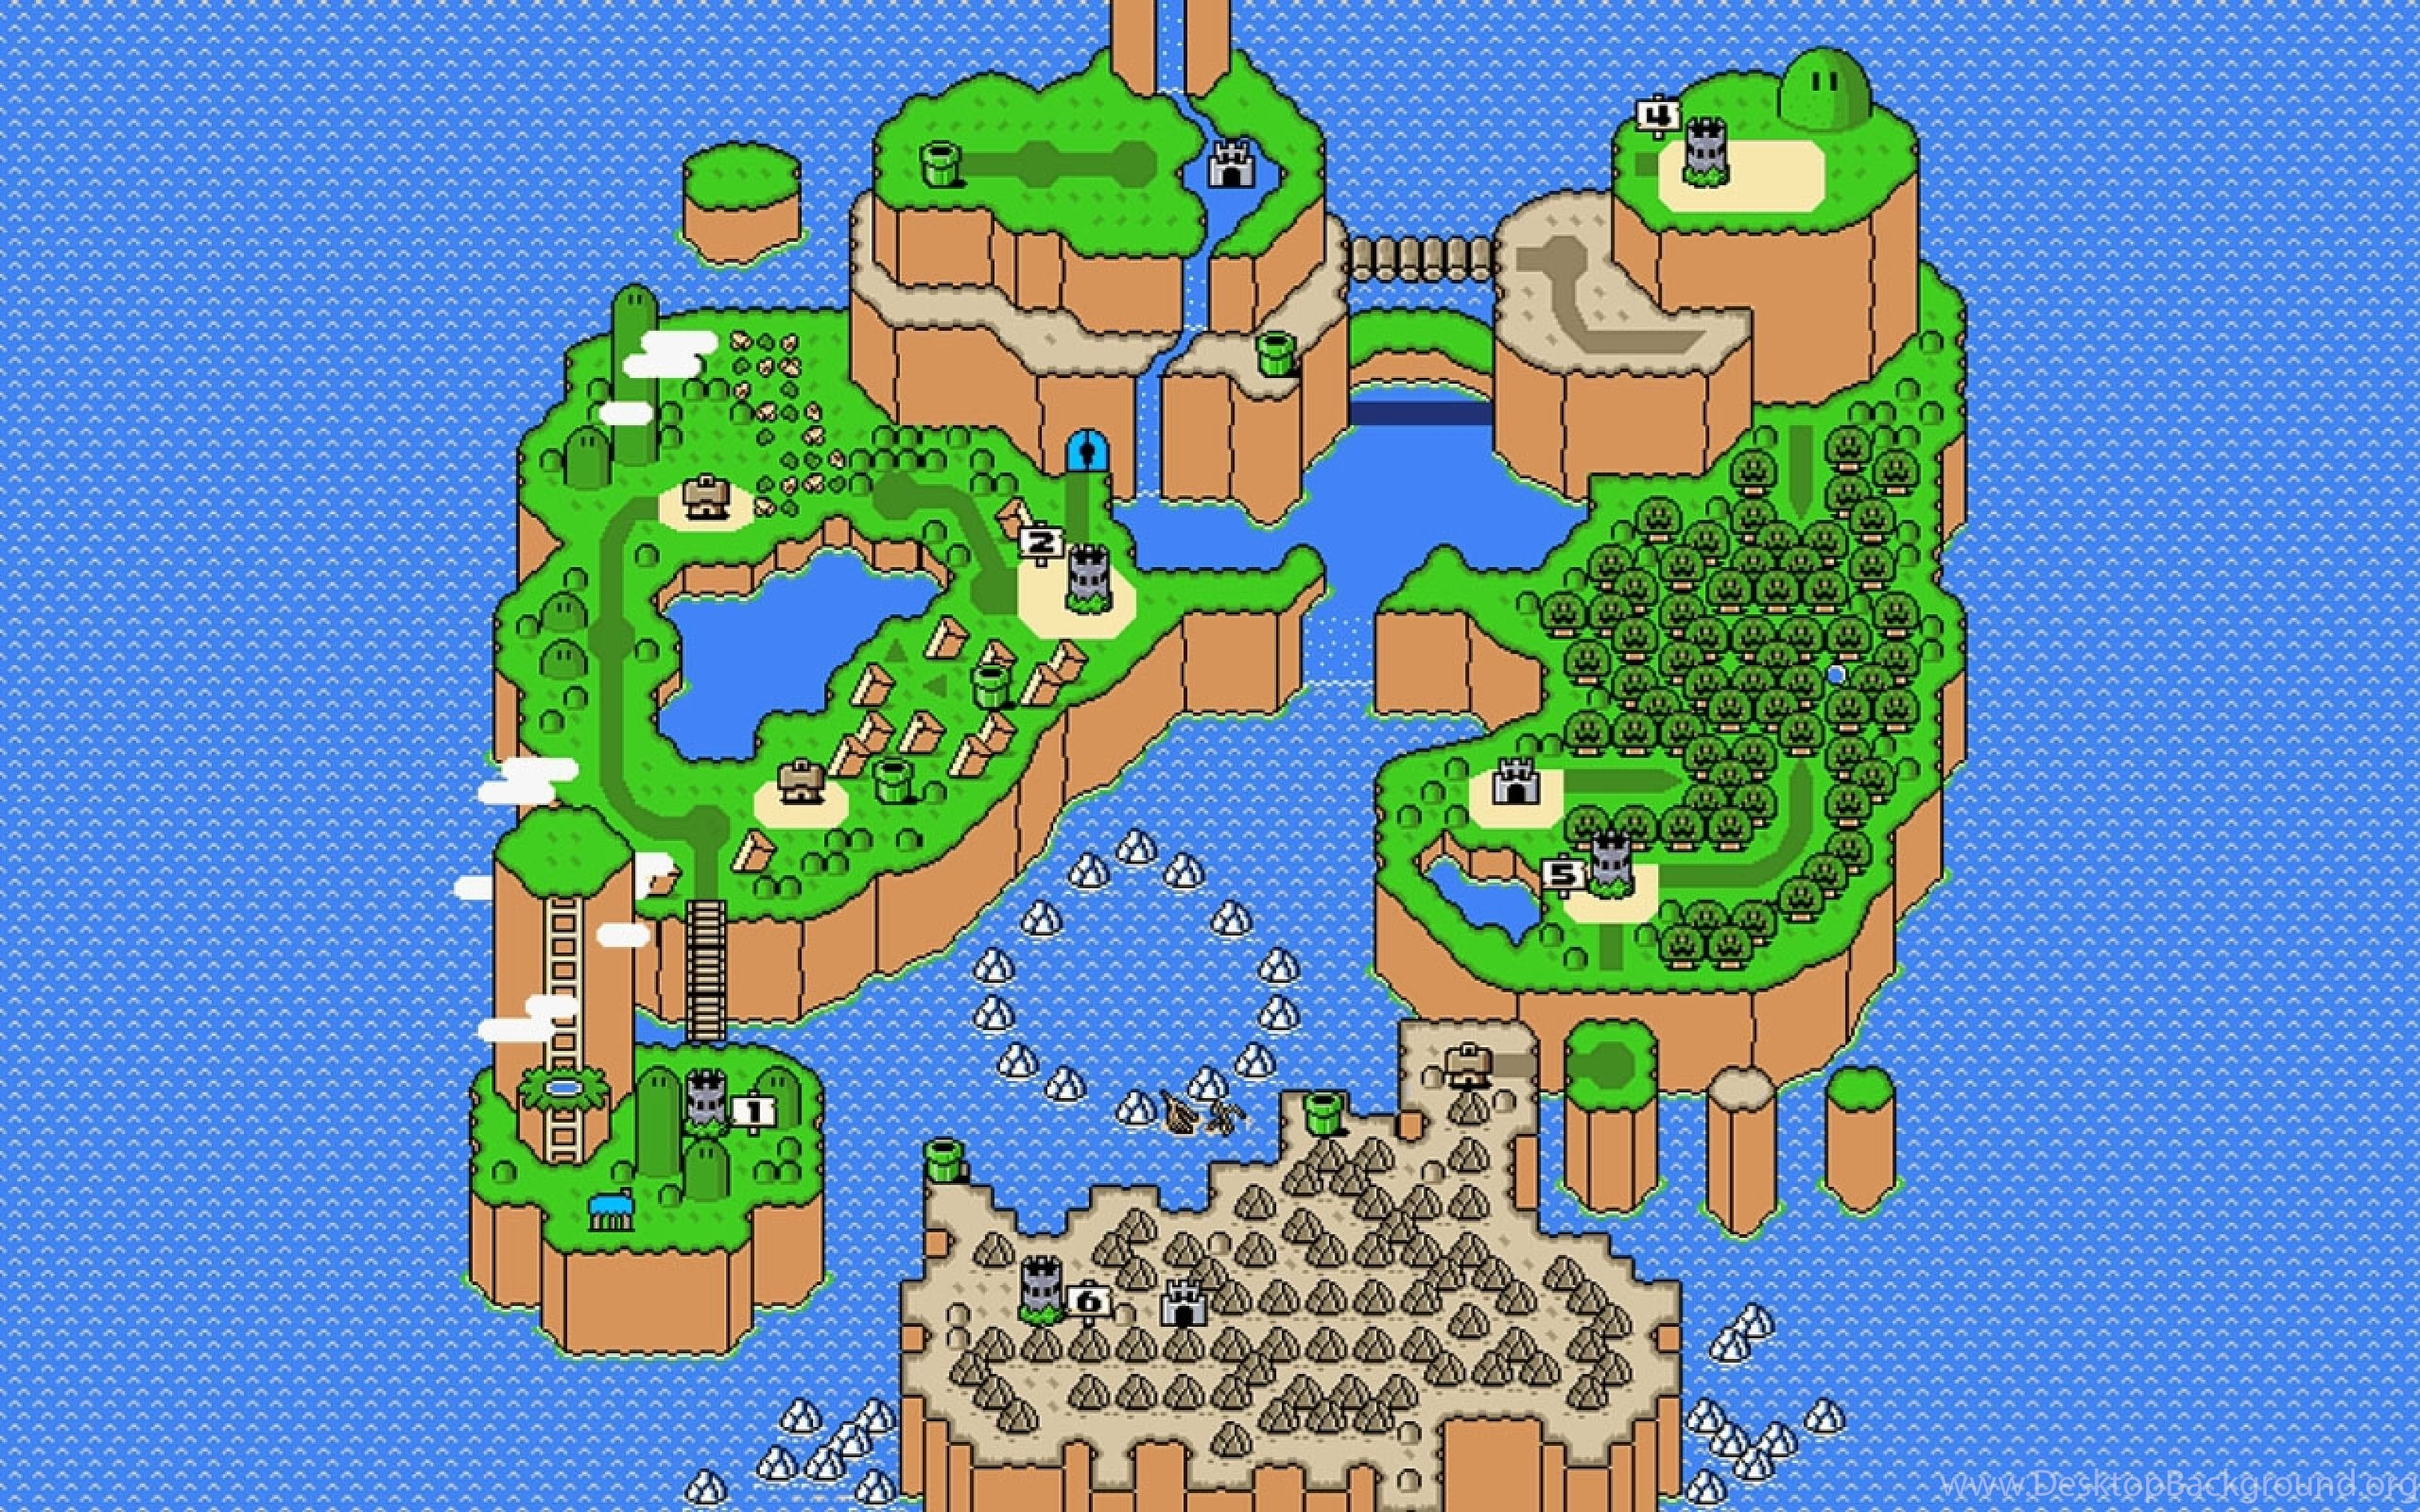 Download Wallpapers Download 2560x1600 Super Mario World Maps